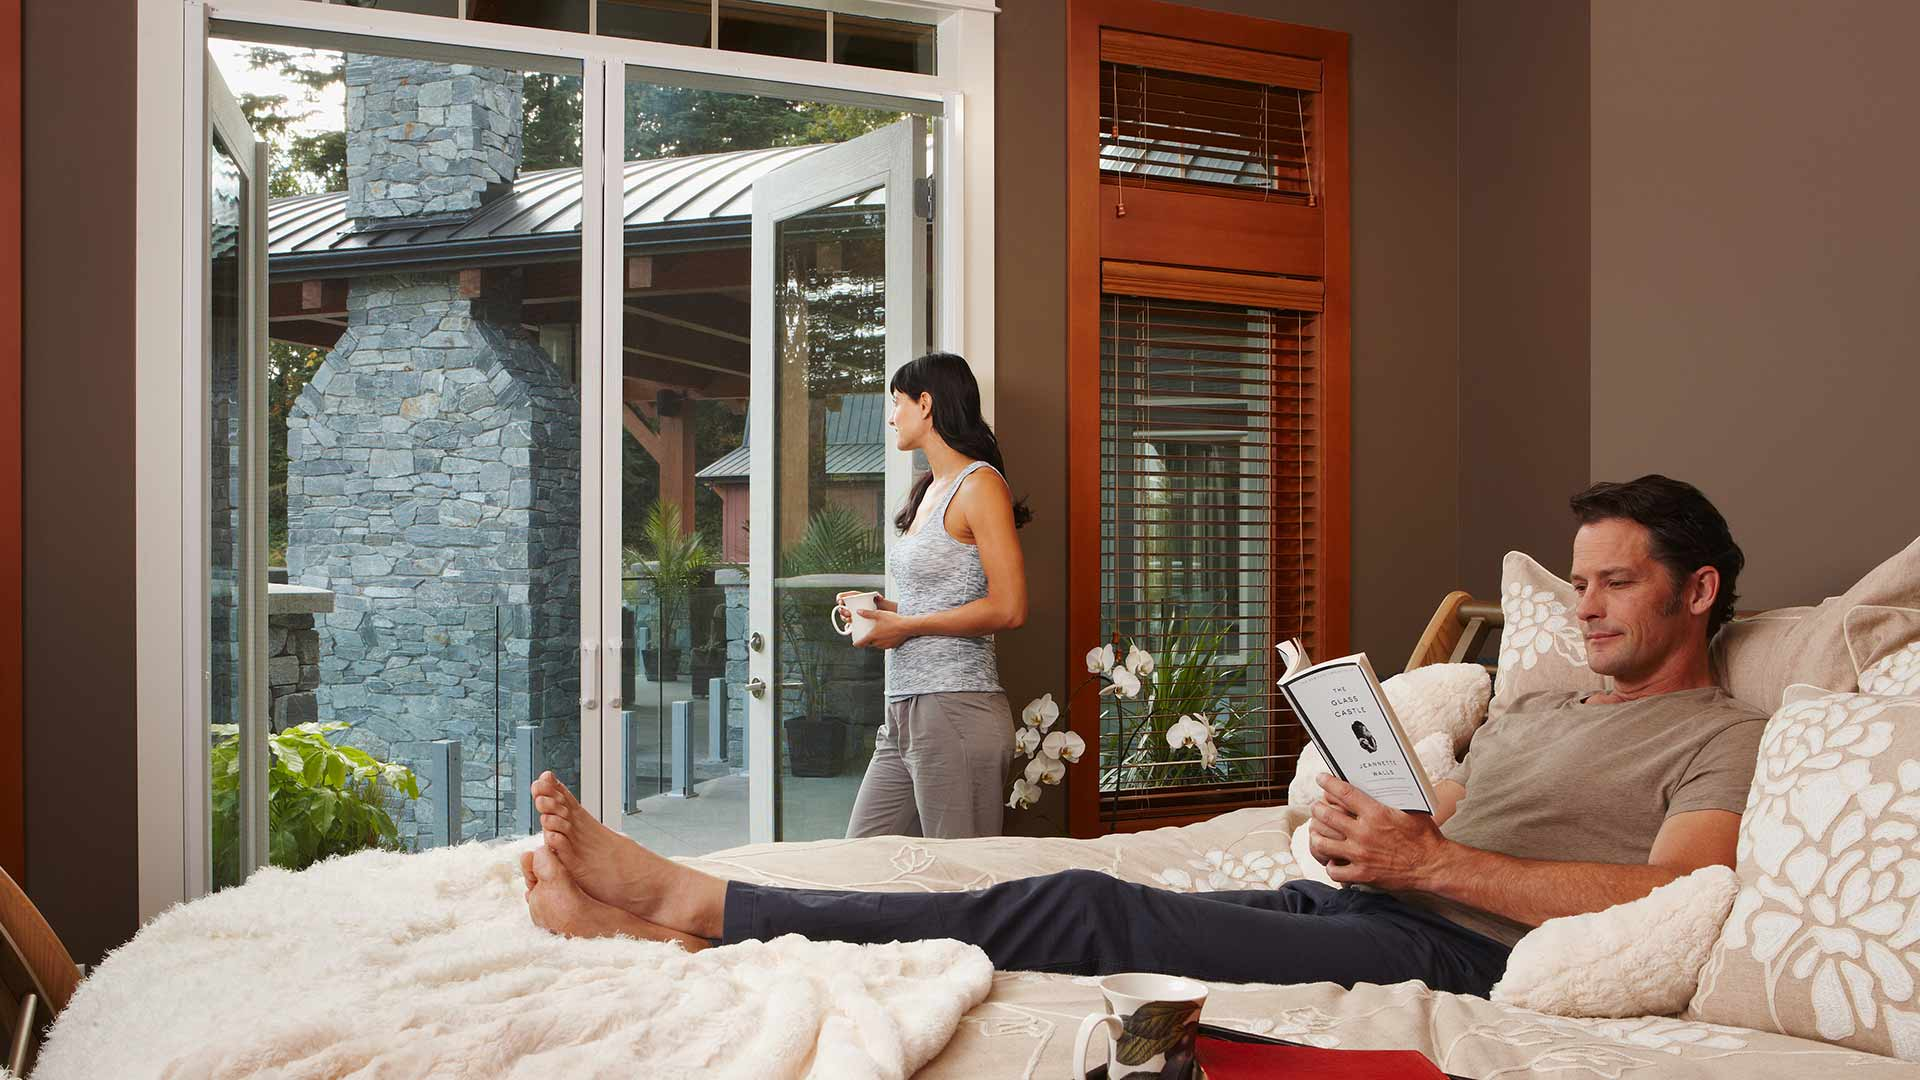 Woman looking outside through Phantom Screens while man waits for her in bed